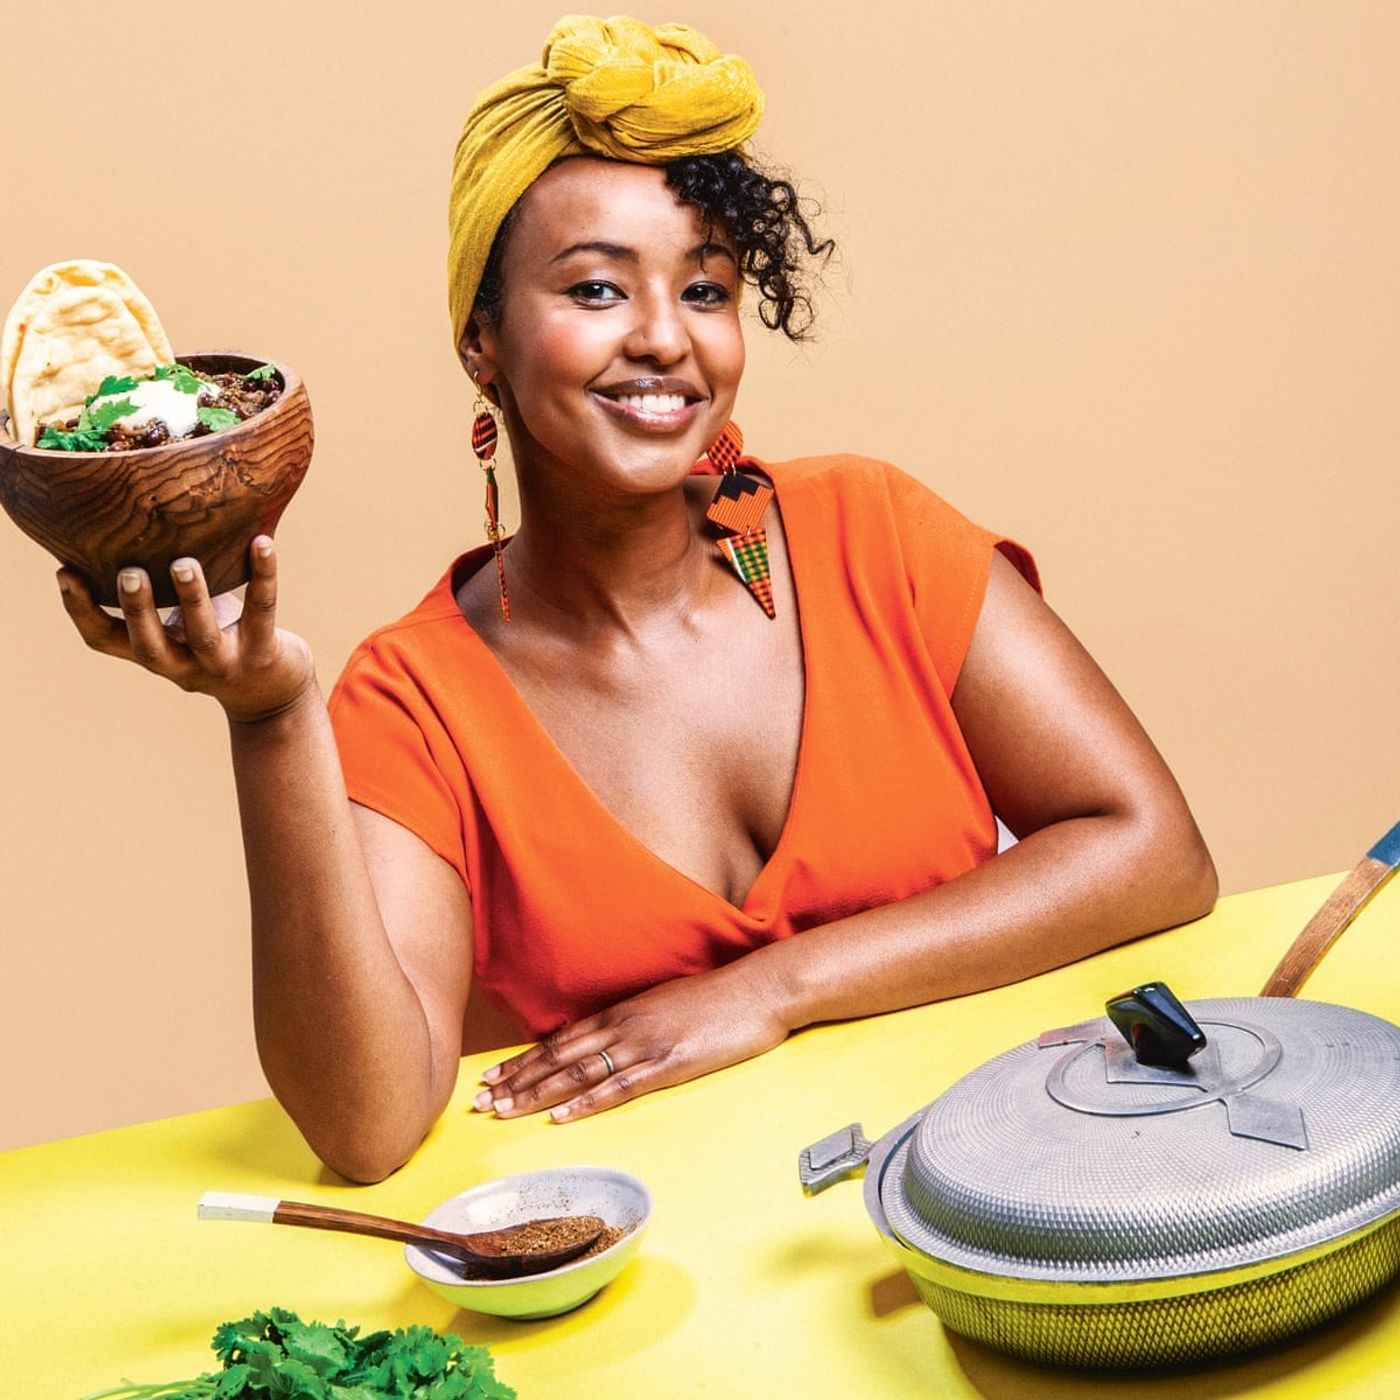 The Politics of (Somali) Food with Fozia Ismail